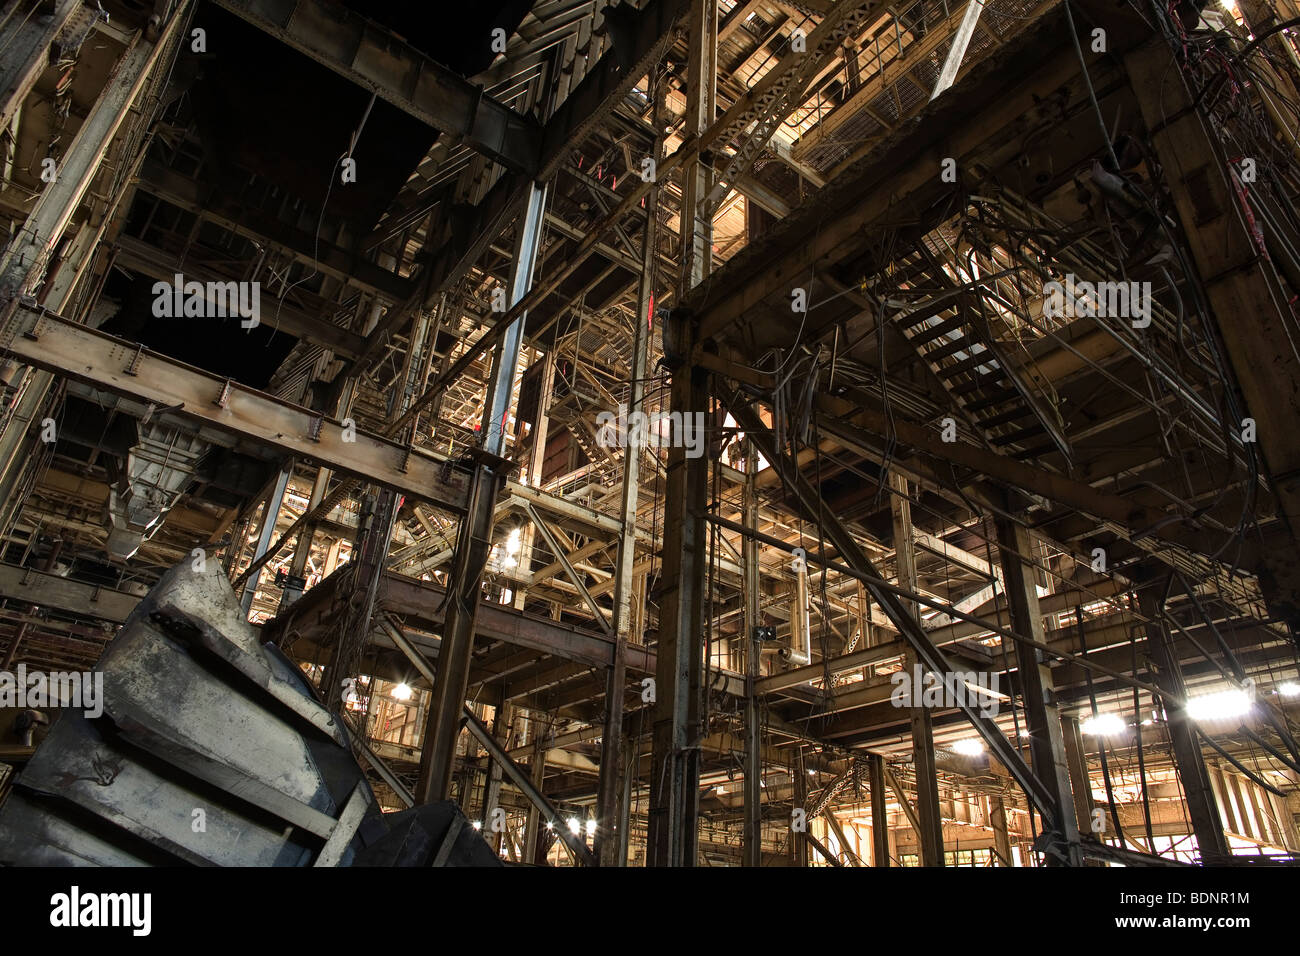 The steel structure of an old factory - Stock Image